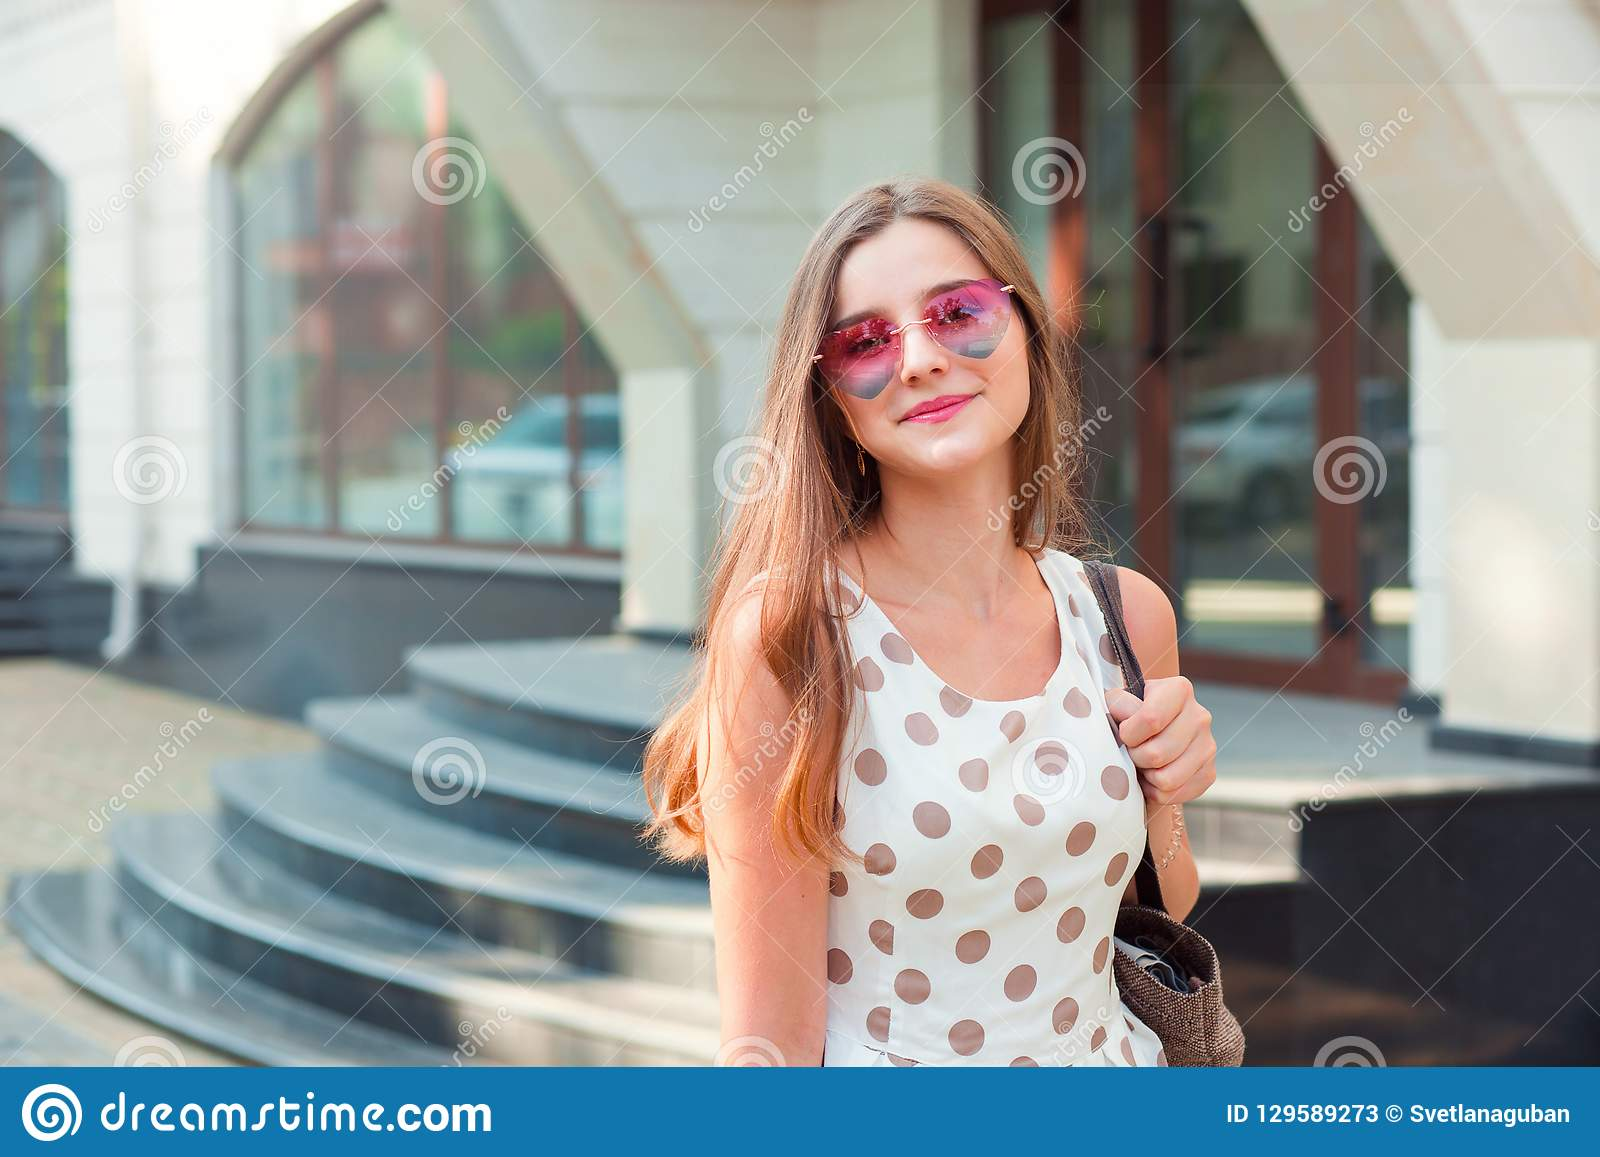 Girl with long brunette hair in pink heart-shaped sunglasses smiling outdoors